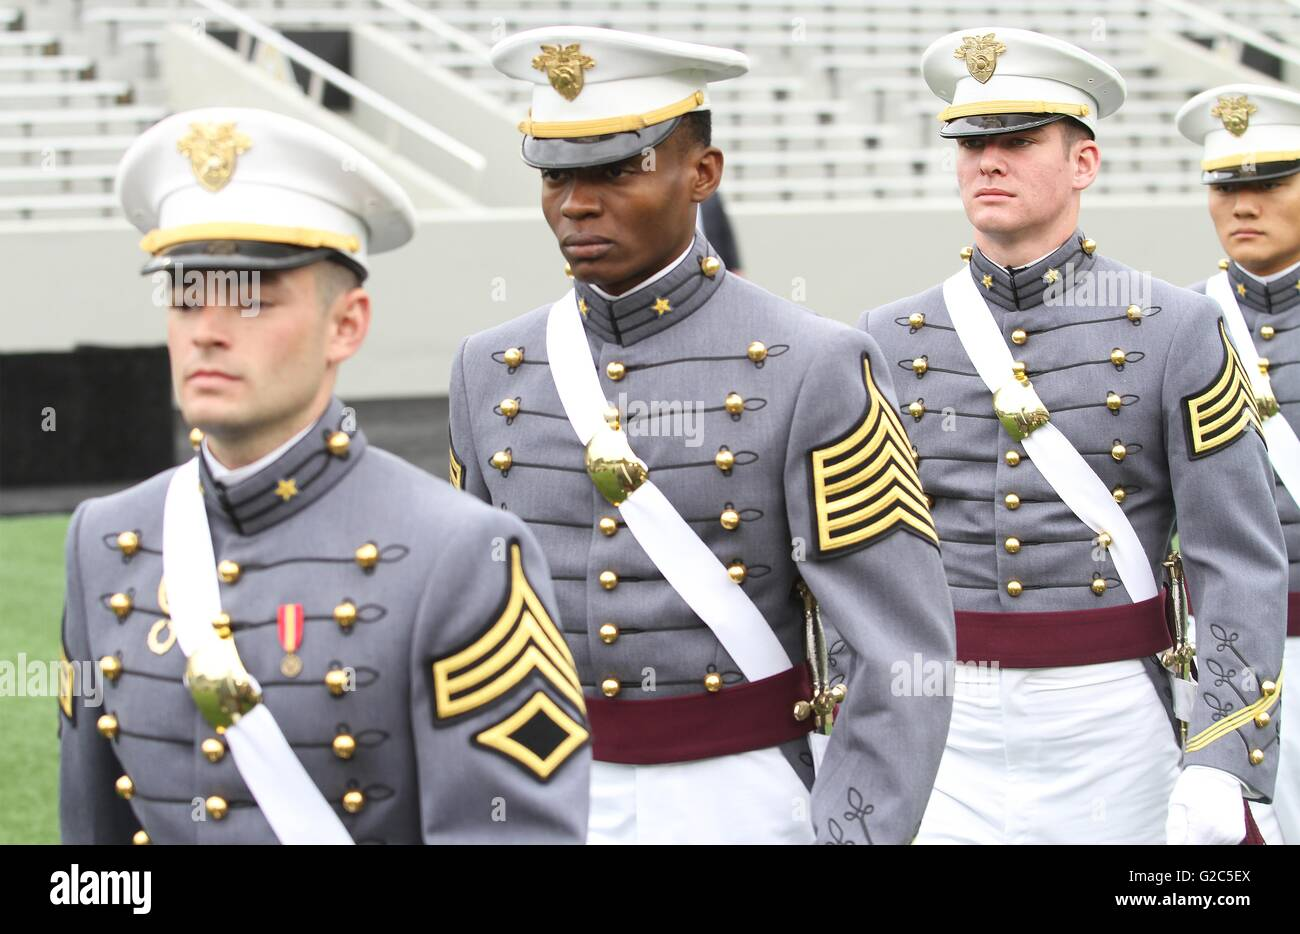 West Point Cadet Alix Idrache, center, during the 2016 commencement ceremony at the West Point Military Academy Stock Photo